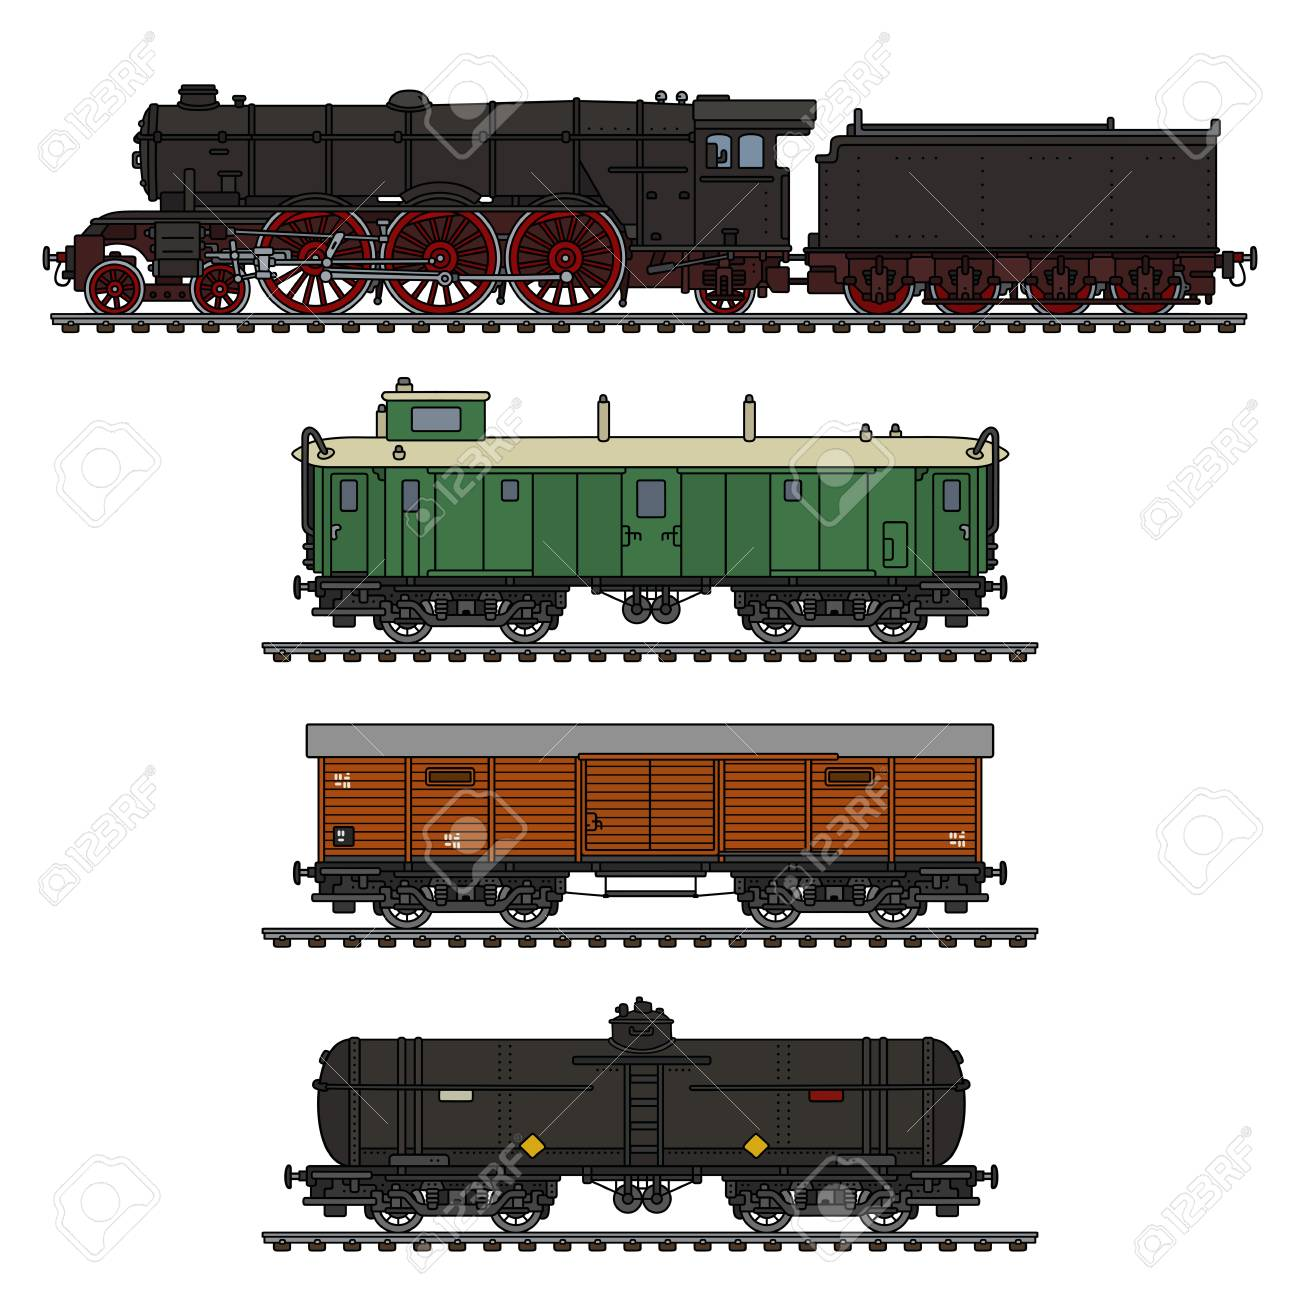 The hand drawing of a vintage freight steam train